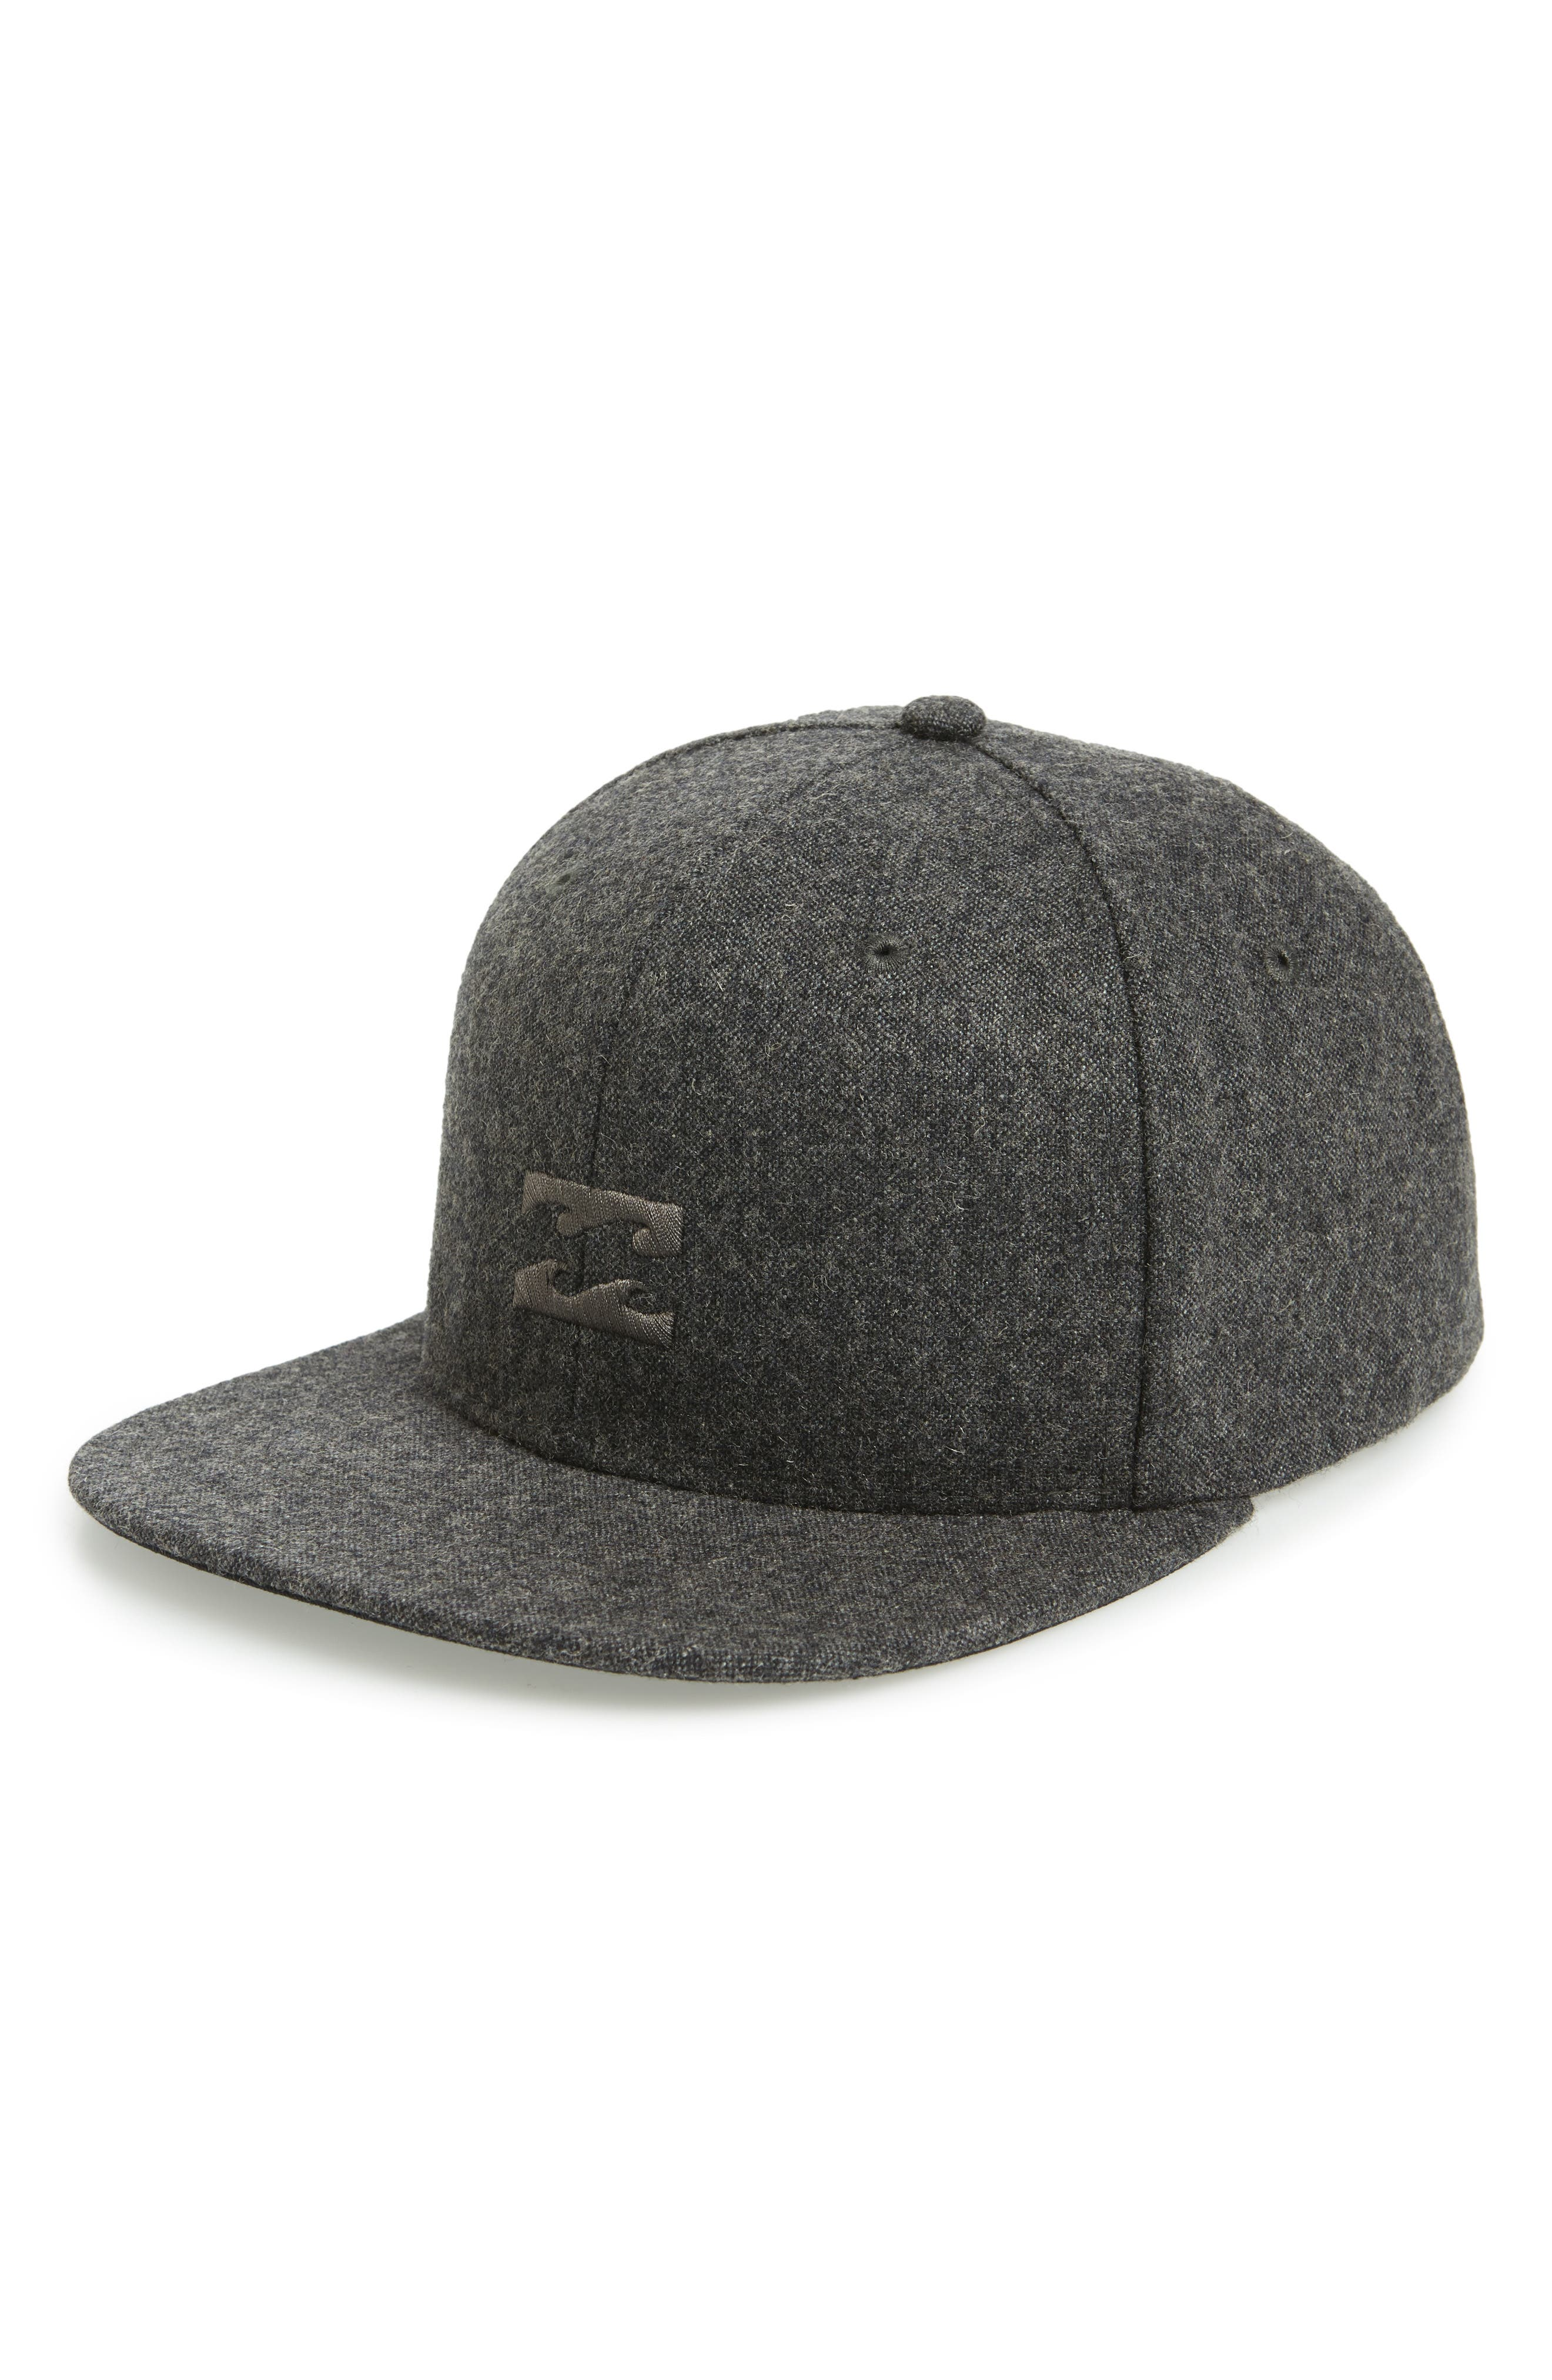 All Day Snapback Cap,                         Main,                         color, BLACK HEATHER